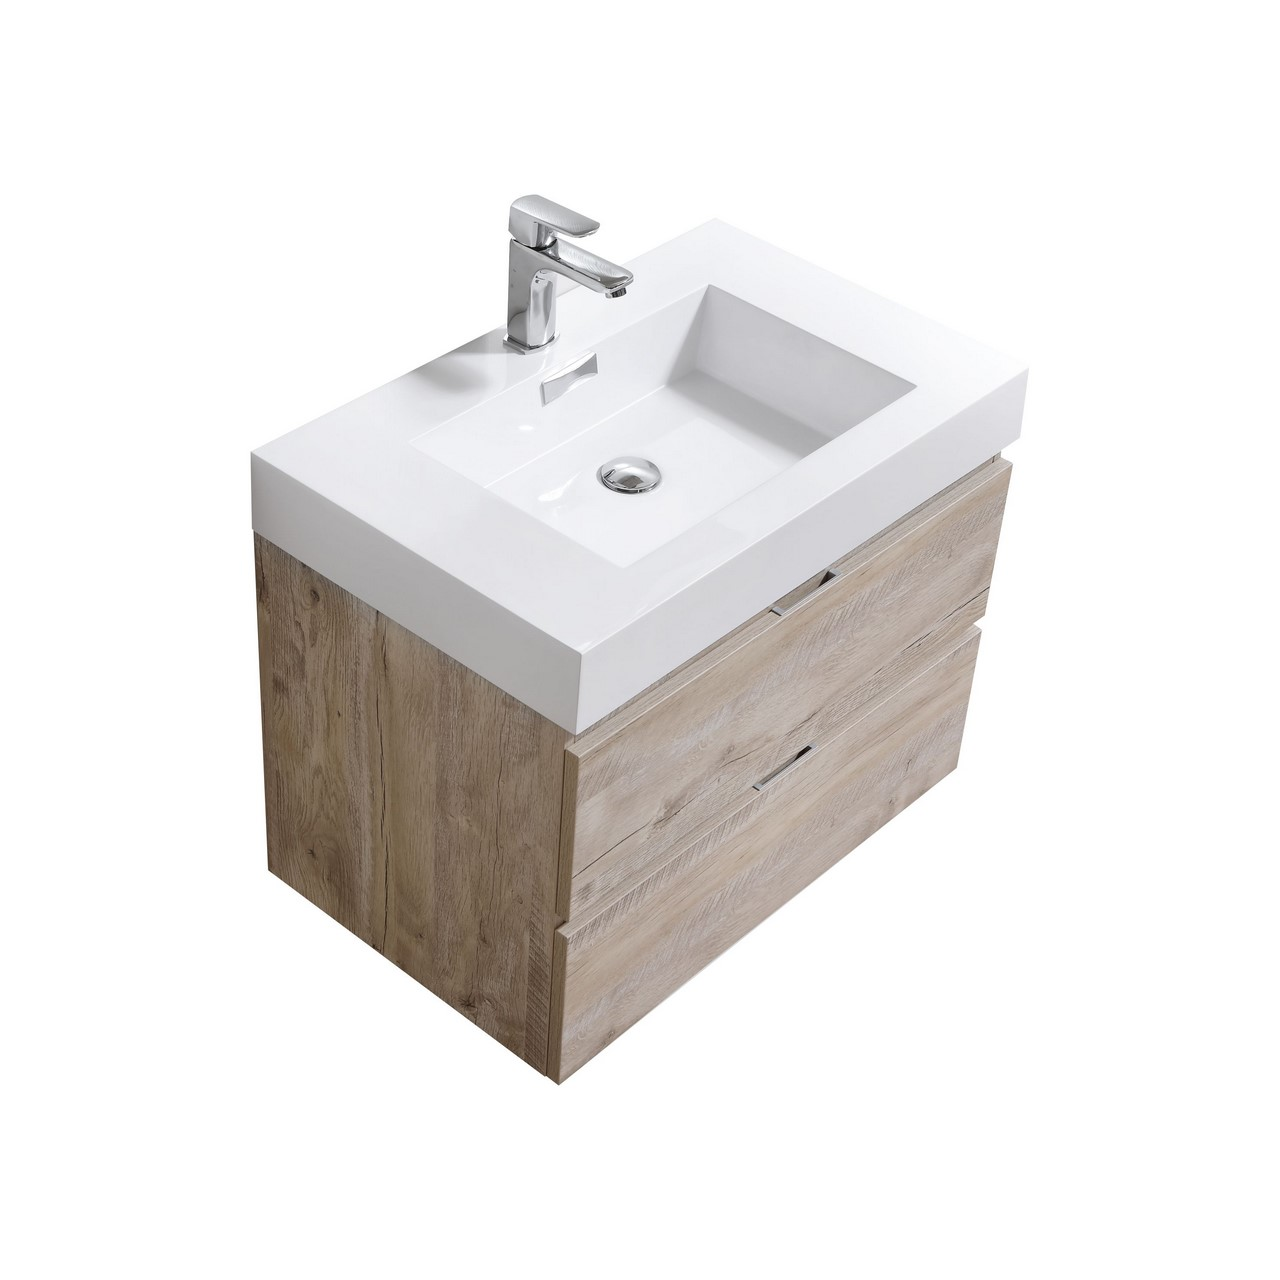 3780161 further Pricing Sign 10 Off additionally Eviva Lugano 48 White Modern Bathroom Vanity With White Integrated Acrylic Sink likewise Bliss 30 Nature Wood Wall Mount Modern Bathroom Vanity moreover 600mm Aluminium Storage Glass Display Cabi. on led acrylic shelves